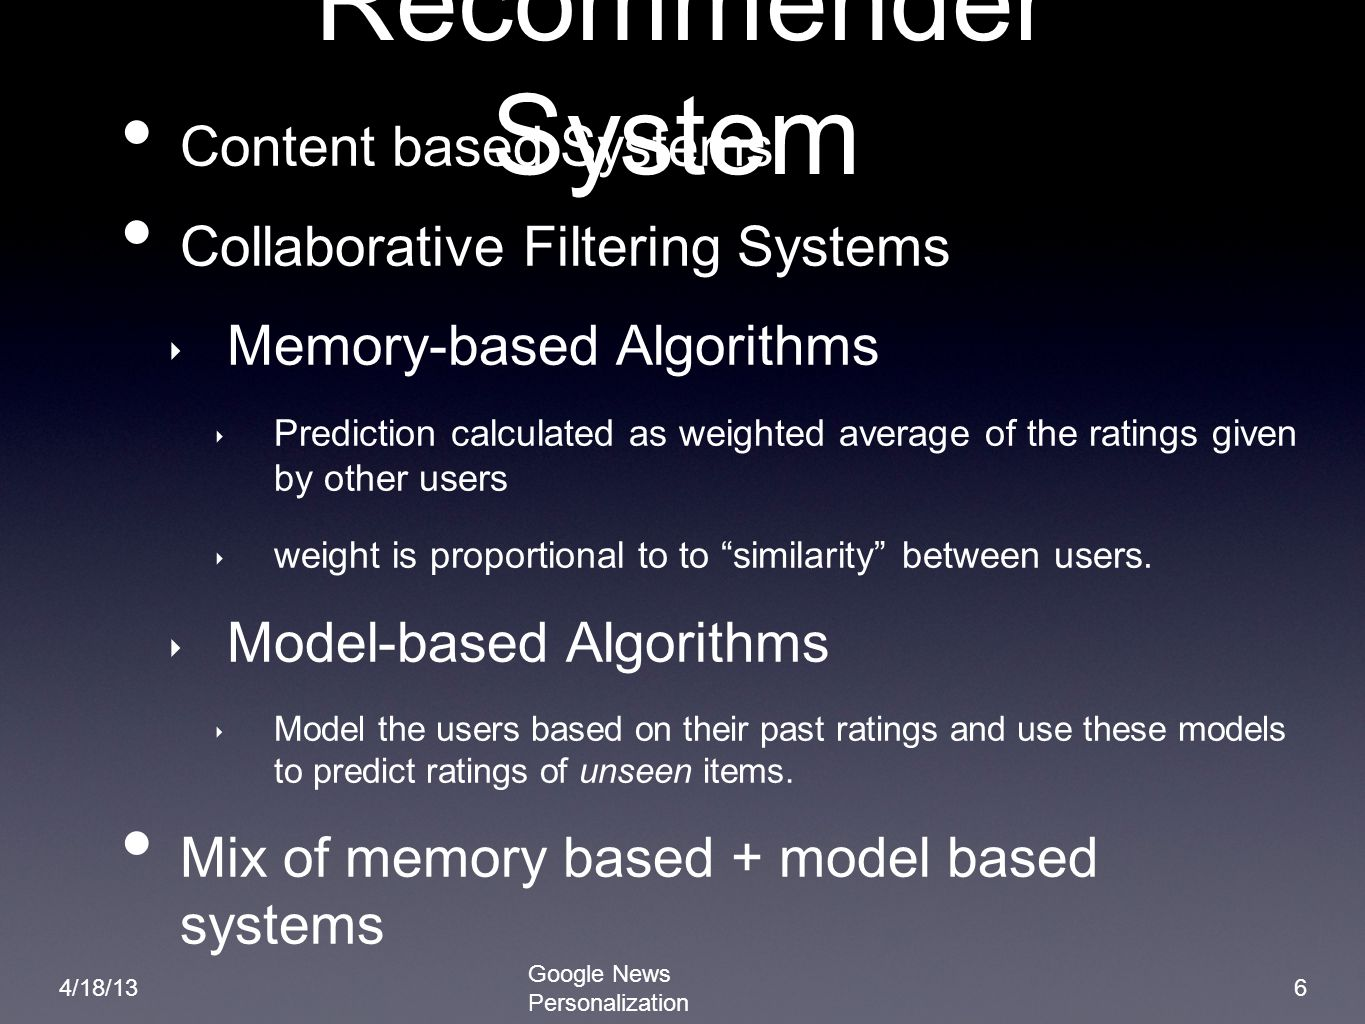 7 Algorithms Model based approach Clustering Techniques: Probabilistic Latent Semantic Indexing(PLSI) and min hash Memory based approach Item Covisitation Google News Personalization 4/18/13